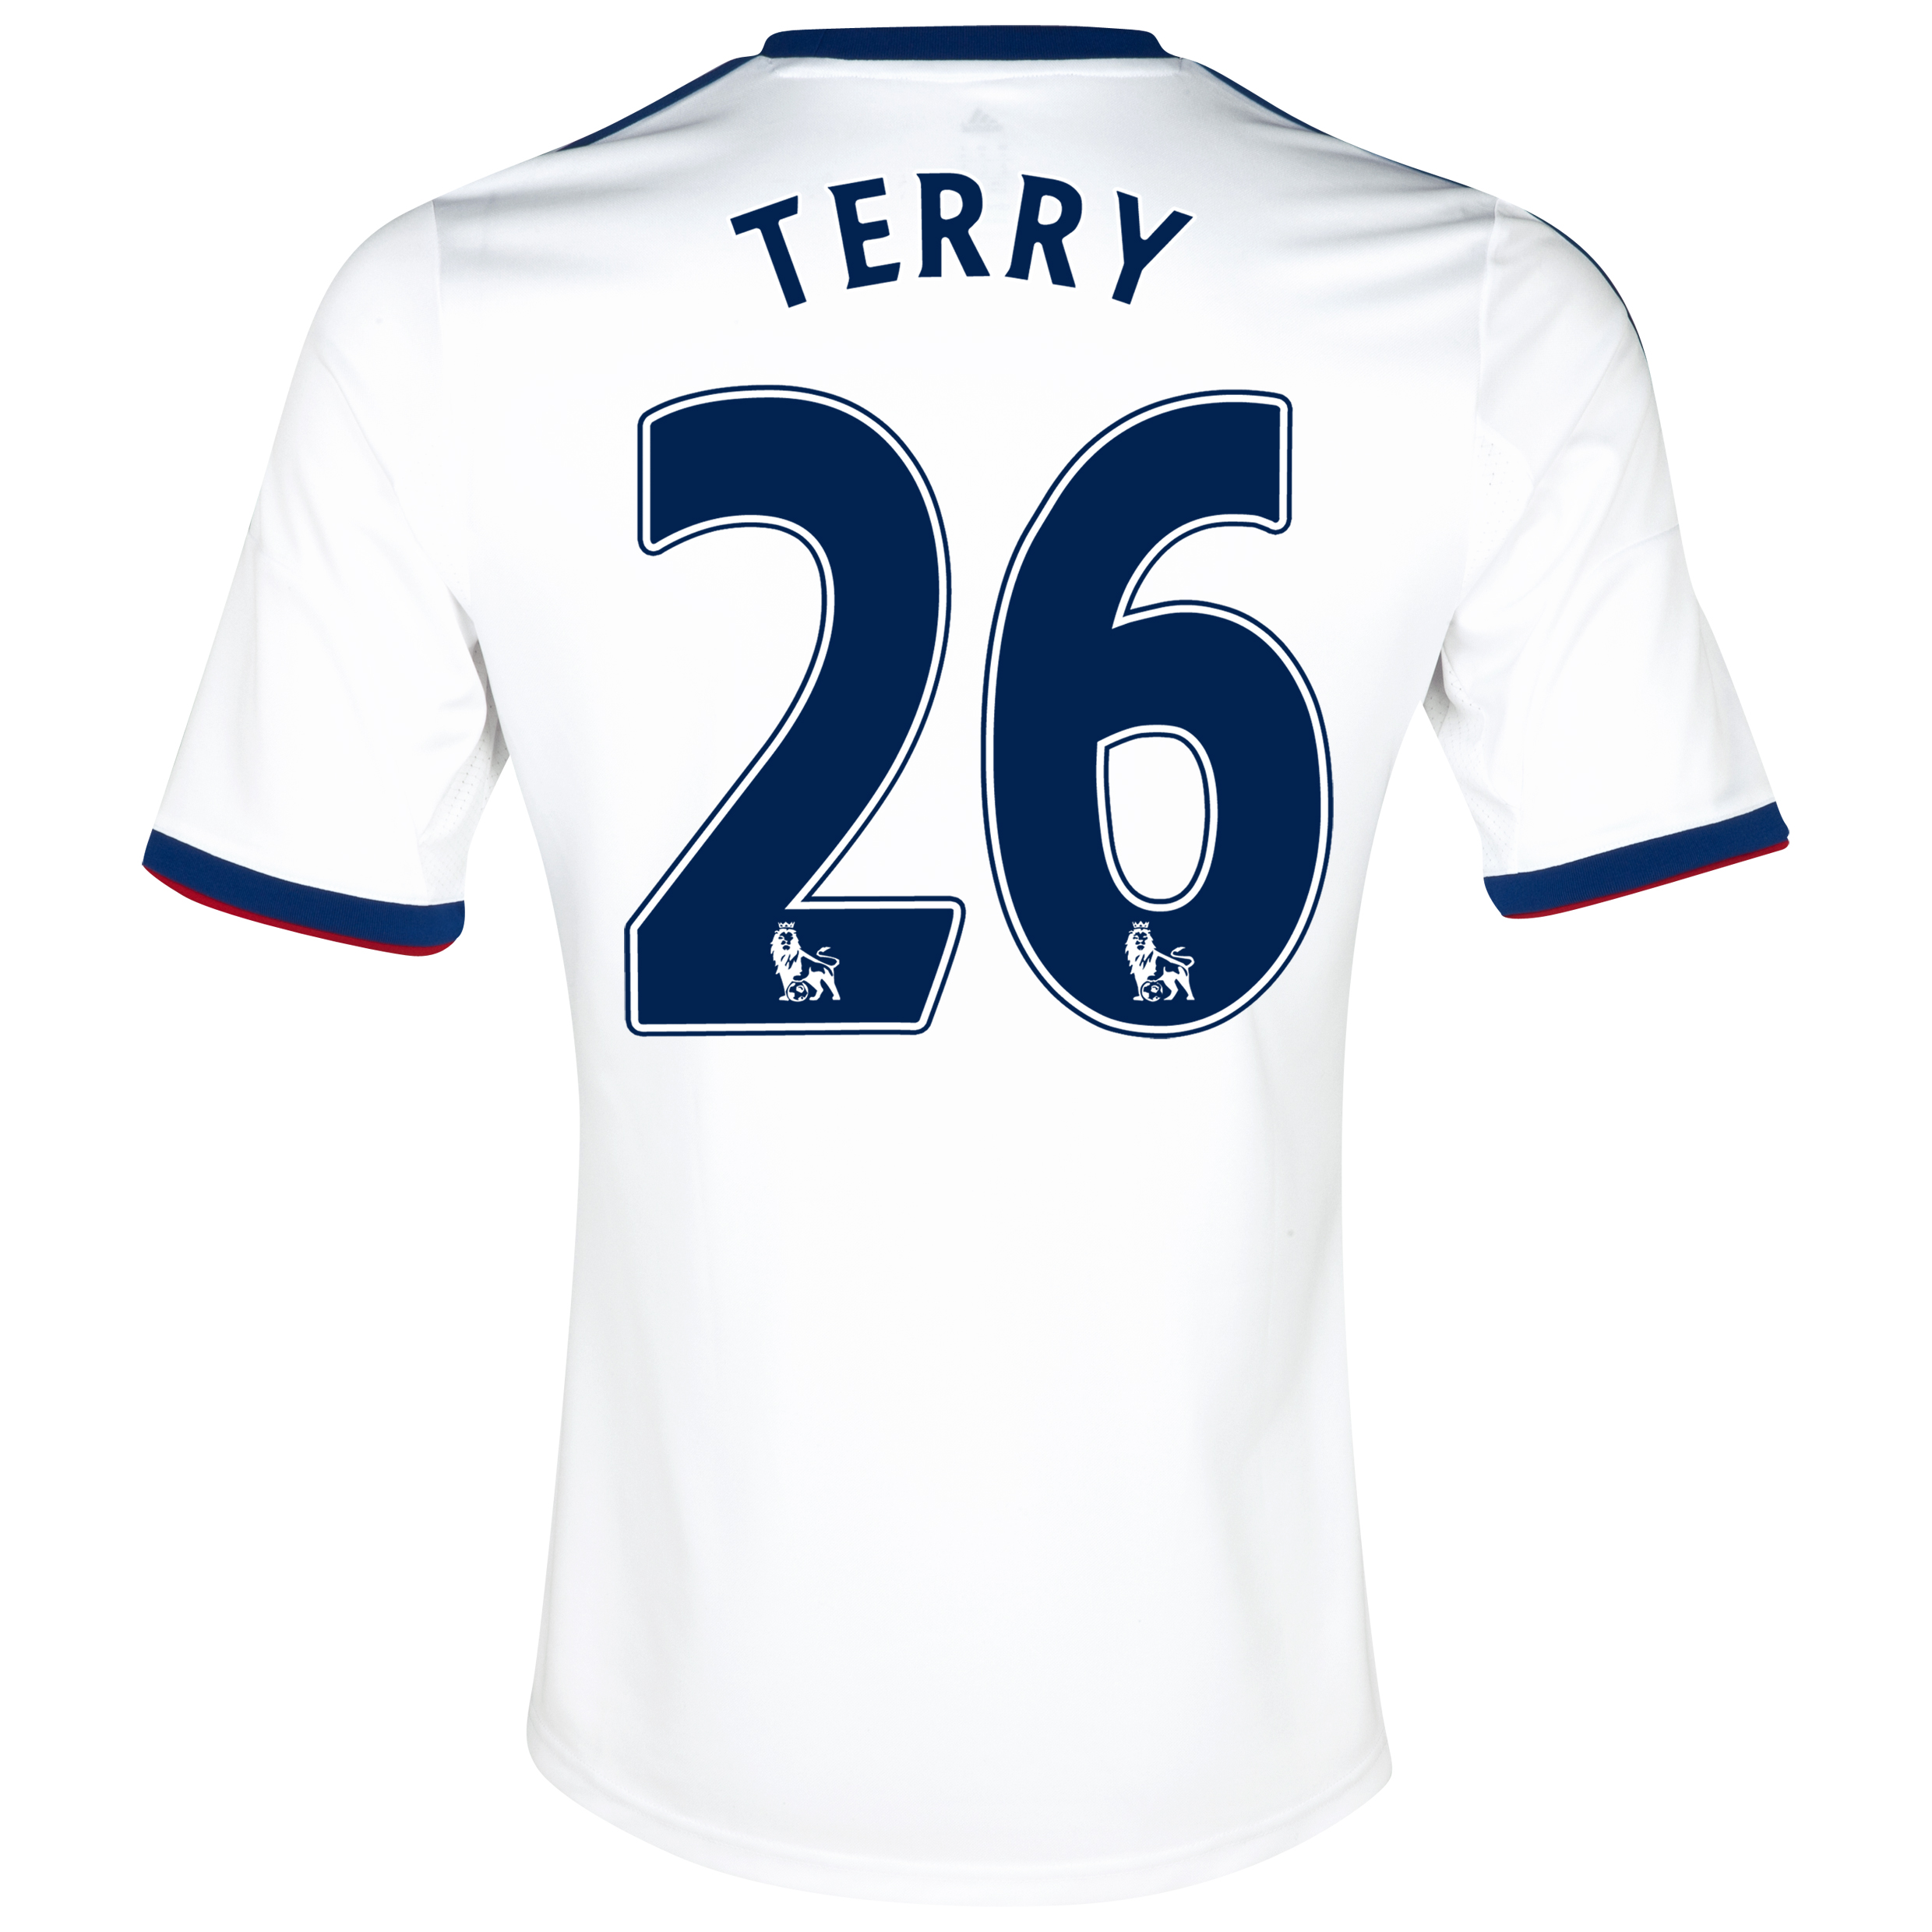 Chelsea Away Shirt 2013/14 with Terry 26 printing